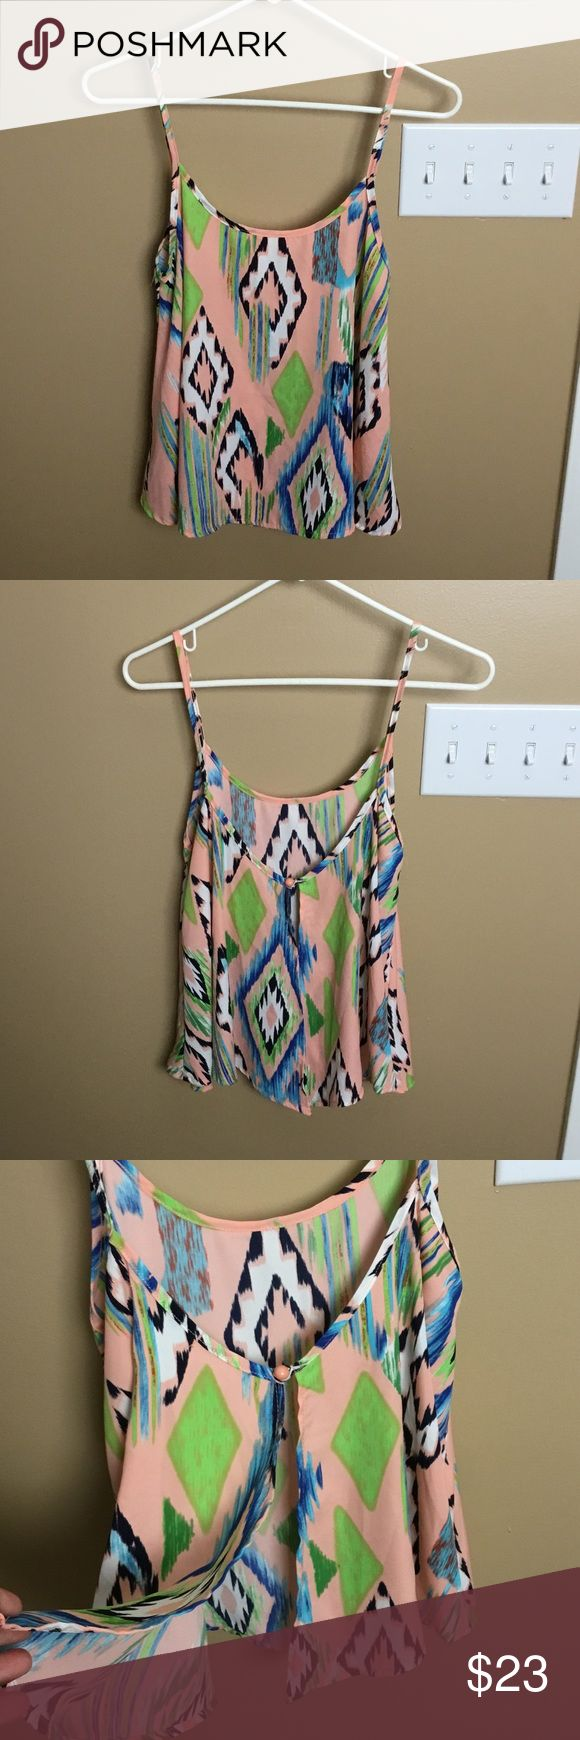 Karlie summer cami tank top Really cute and comfy cami top from the well known brand, Karlie! Button on the back and then opens for a unique look! Fun spring and summer colors...peach and lime green, bright blue, navy and white! Geometric Aztec print! Worn one time! In excellent condition! Karlie Tops Tank Tops